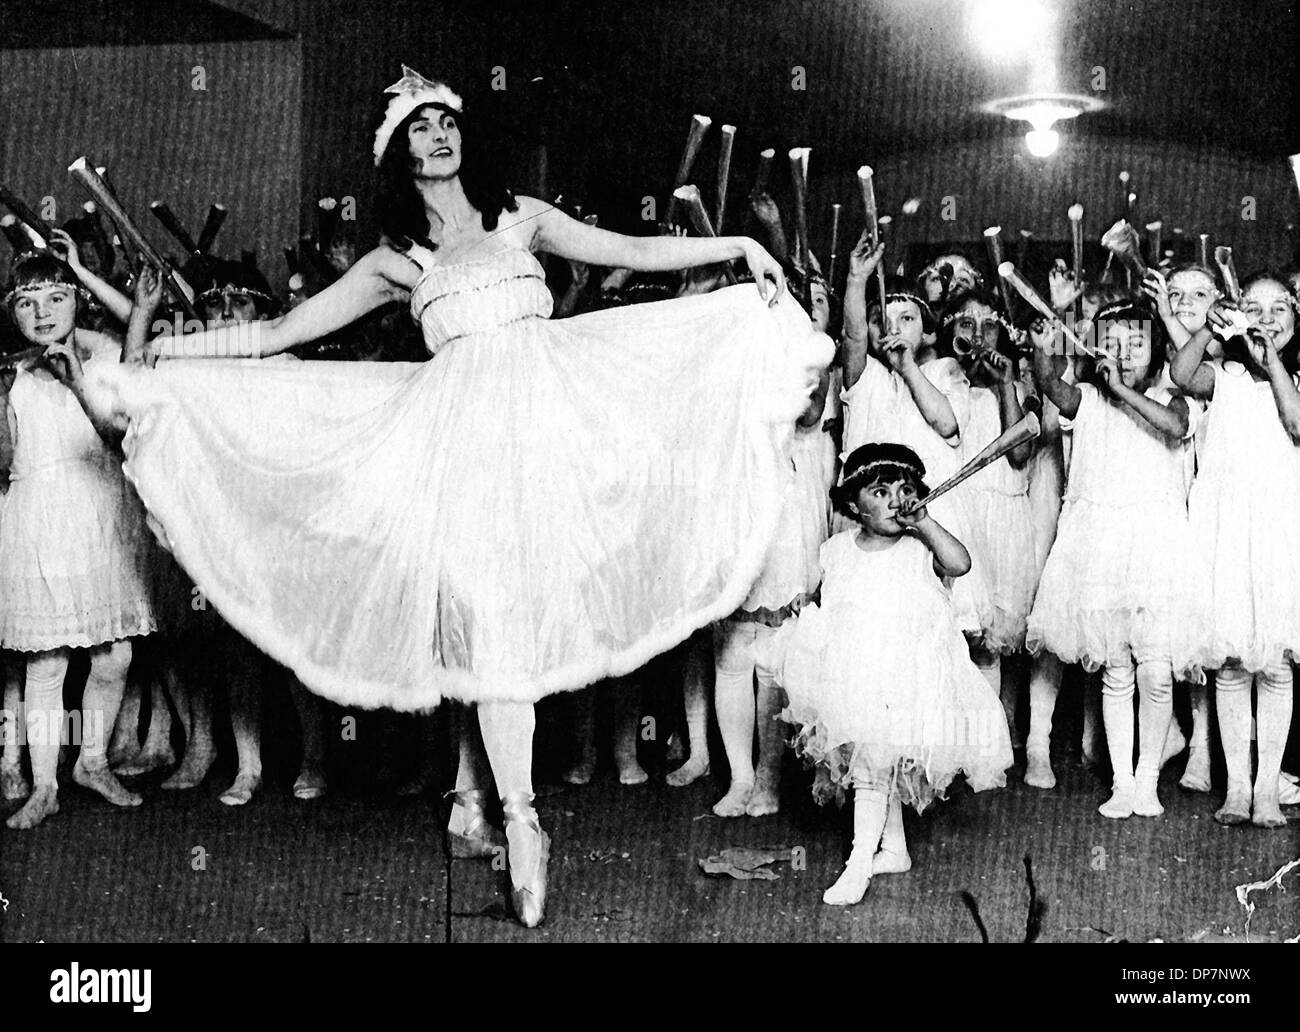 Nov 20, 2006; Oakland, CA, USA; Louise Jorgensen plays the 'Spirit of Christmas' with the 'Fairies' gathered around her during one of the first Christmas Pageants that beecame a tradition in Oakland, CA.  Mandatory Credit: Photo by Oakland Tribune/ZUMA Press. (©) Copyright 2006 by Oakland Tribune - Stock Image